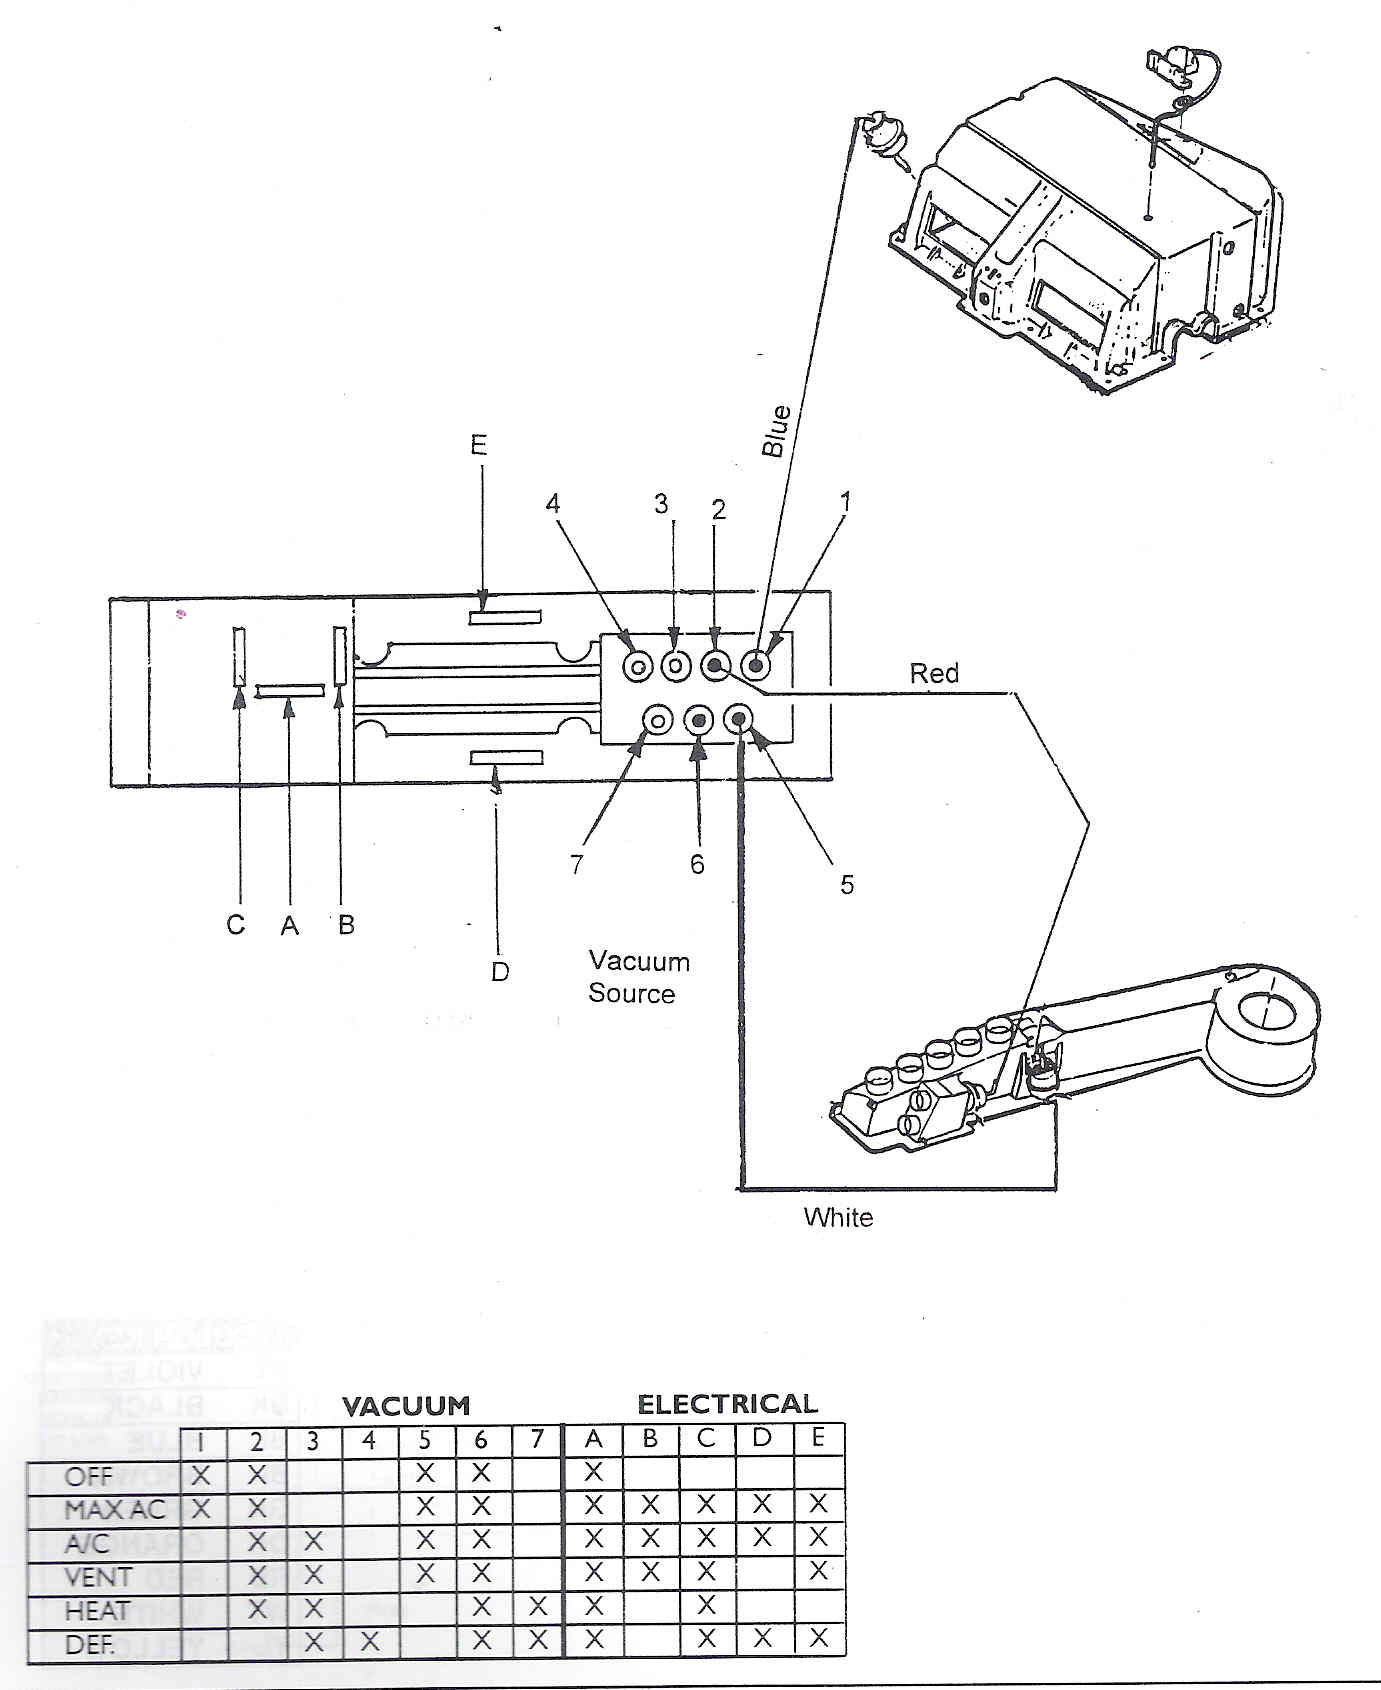 2012 02 05_194030__control_head_vacuum vacuum diagram for heating controls 1985 winnebago chieftain 27 1985 Chevy Motorhome 26 Foot at panicattacktreatment.co